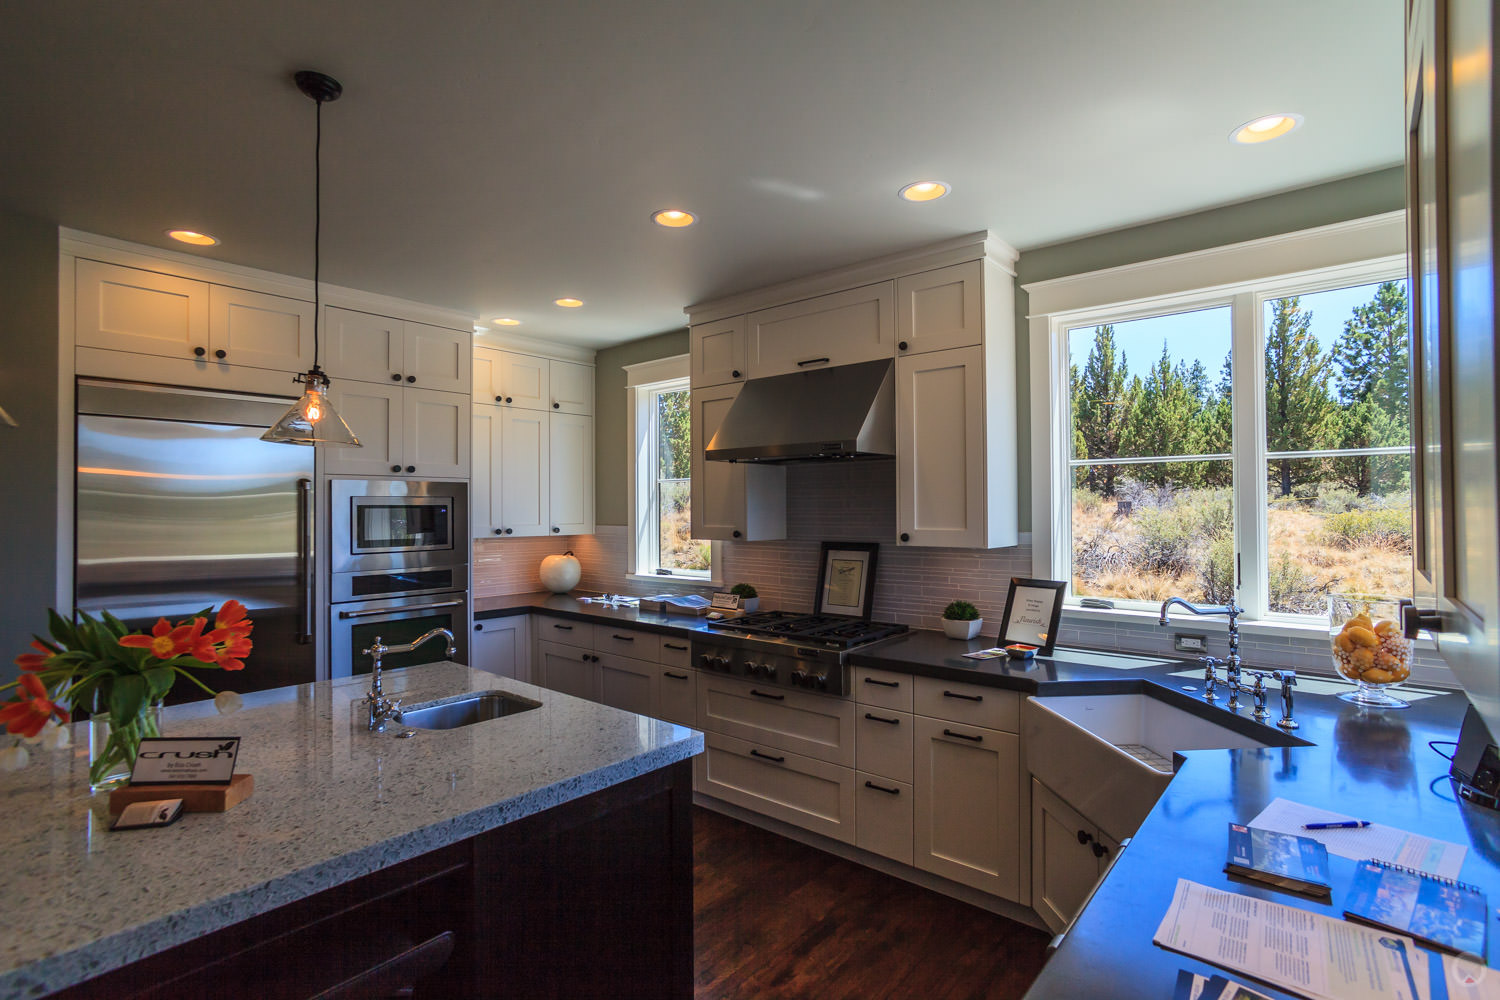 Stainless steel appliances.Also note: Shaker-style cabinets, subway tile backsplash, farm sink, and pendant light fixture.